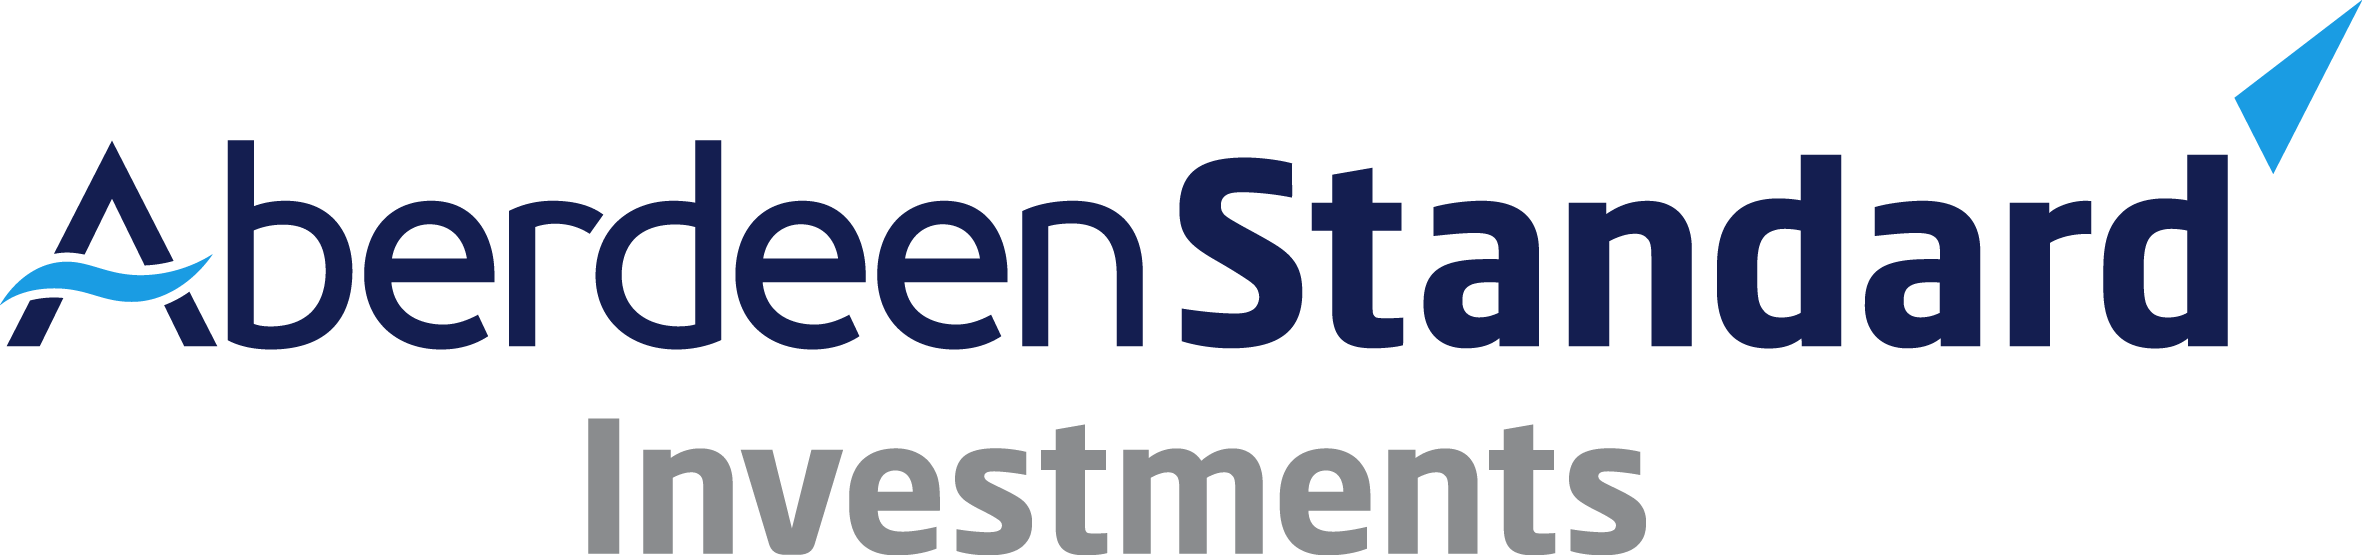 Aberdeen Emerging Markets Investment Co Ltd Logo